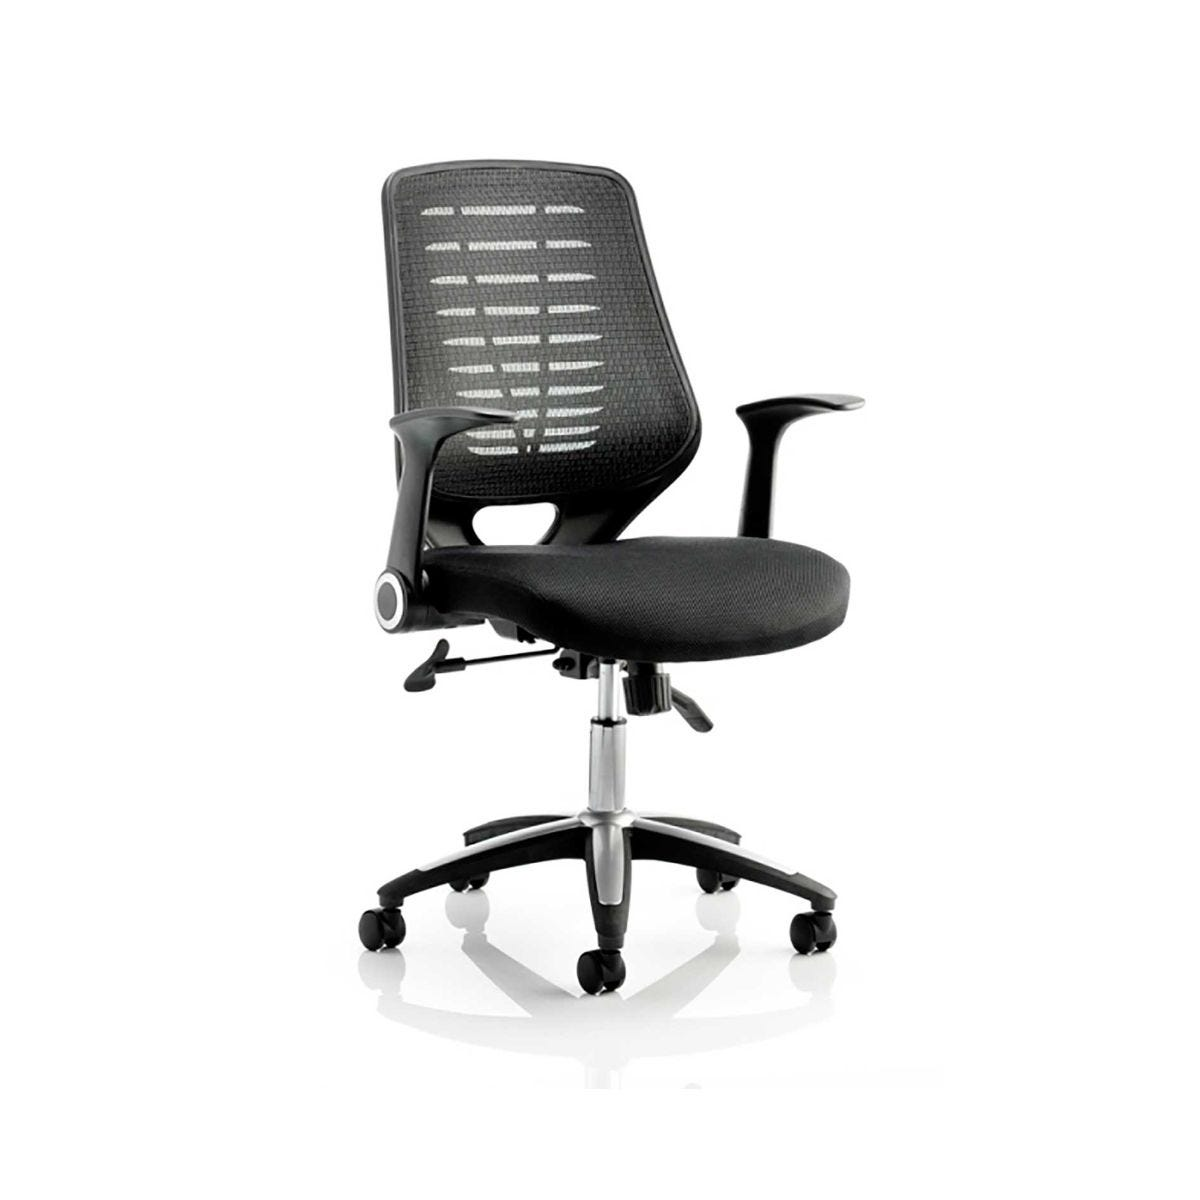 Relay Air Mesh Office Chair, Black